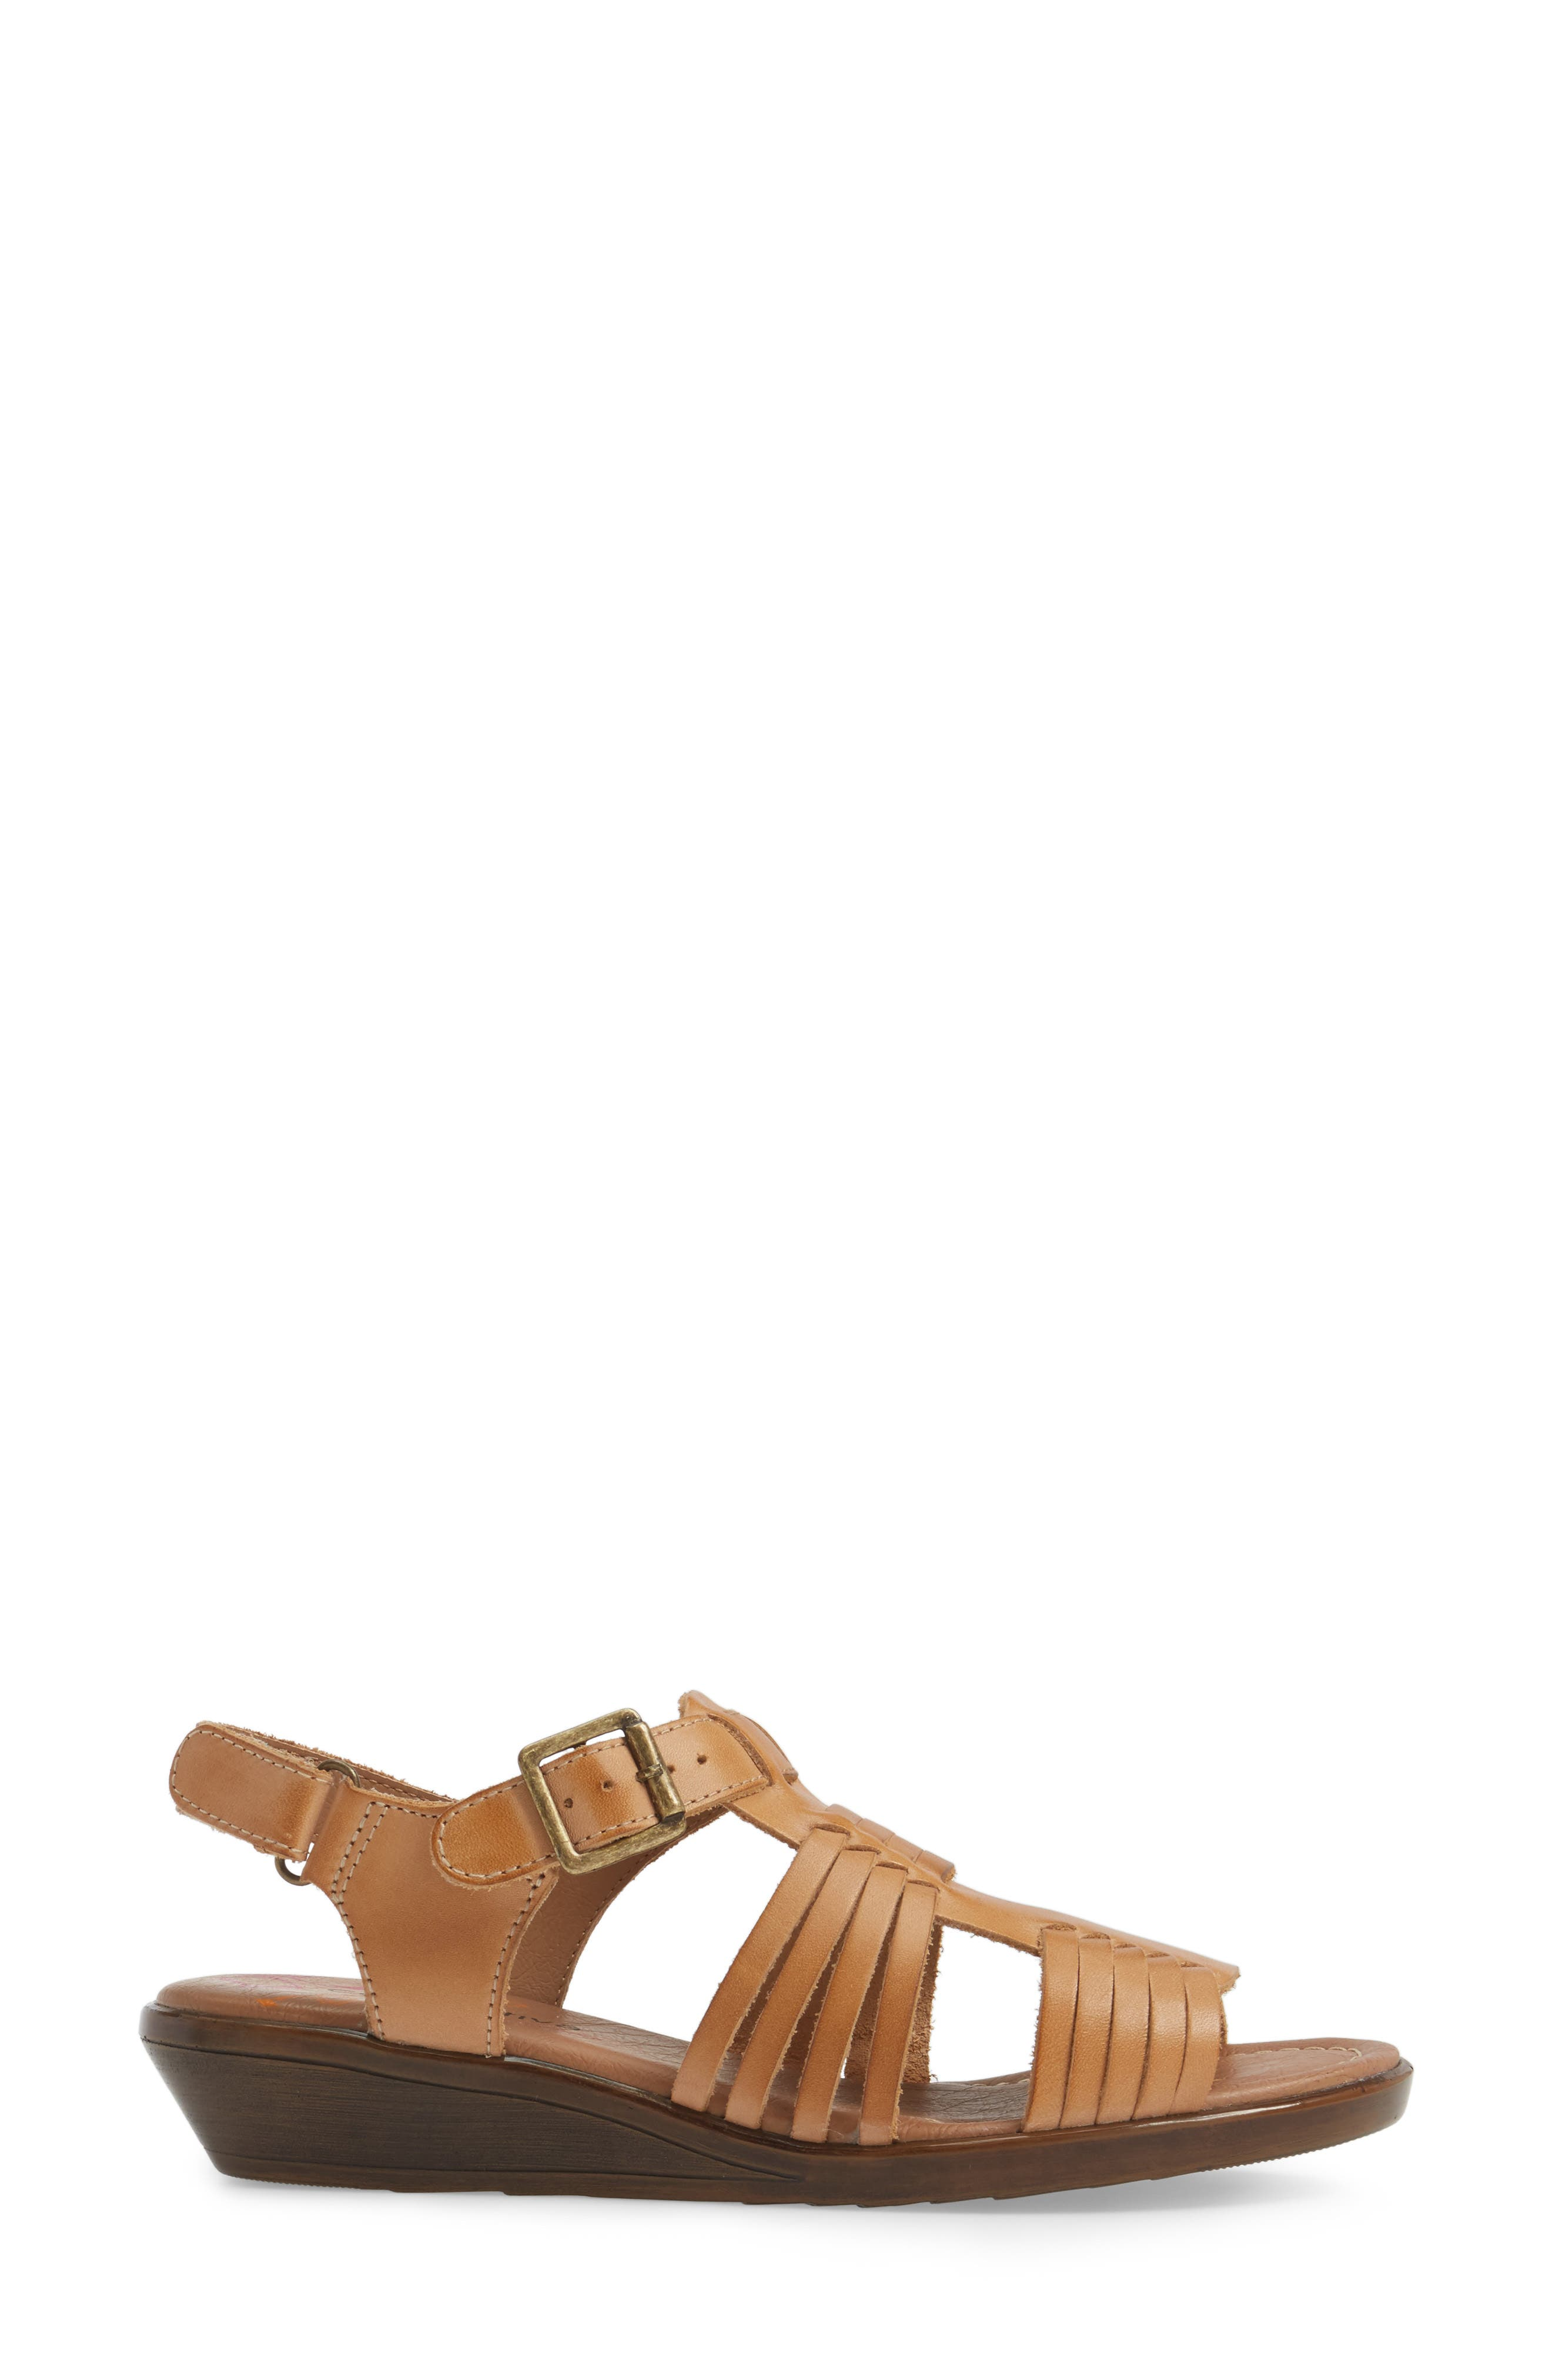 Freeport Sandal,                             Alternate thumbnail 3, color,                             NATURAL LEATHER